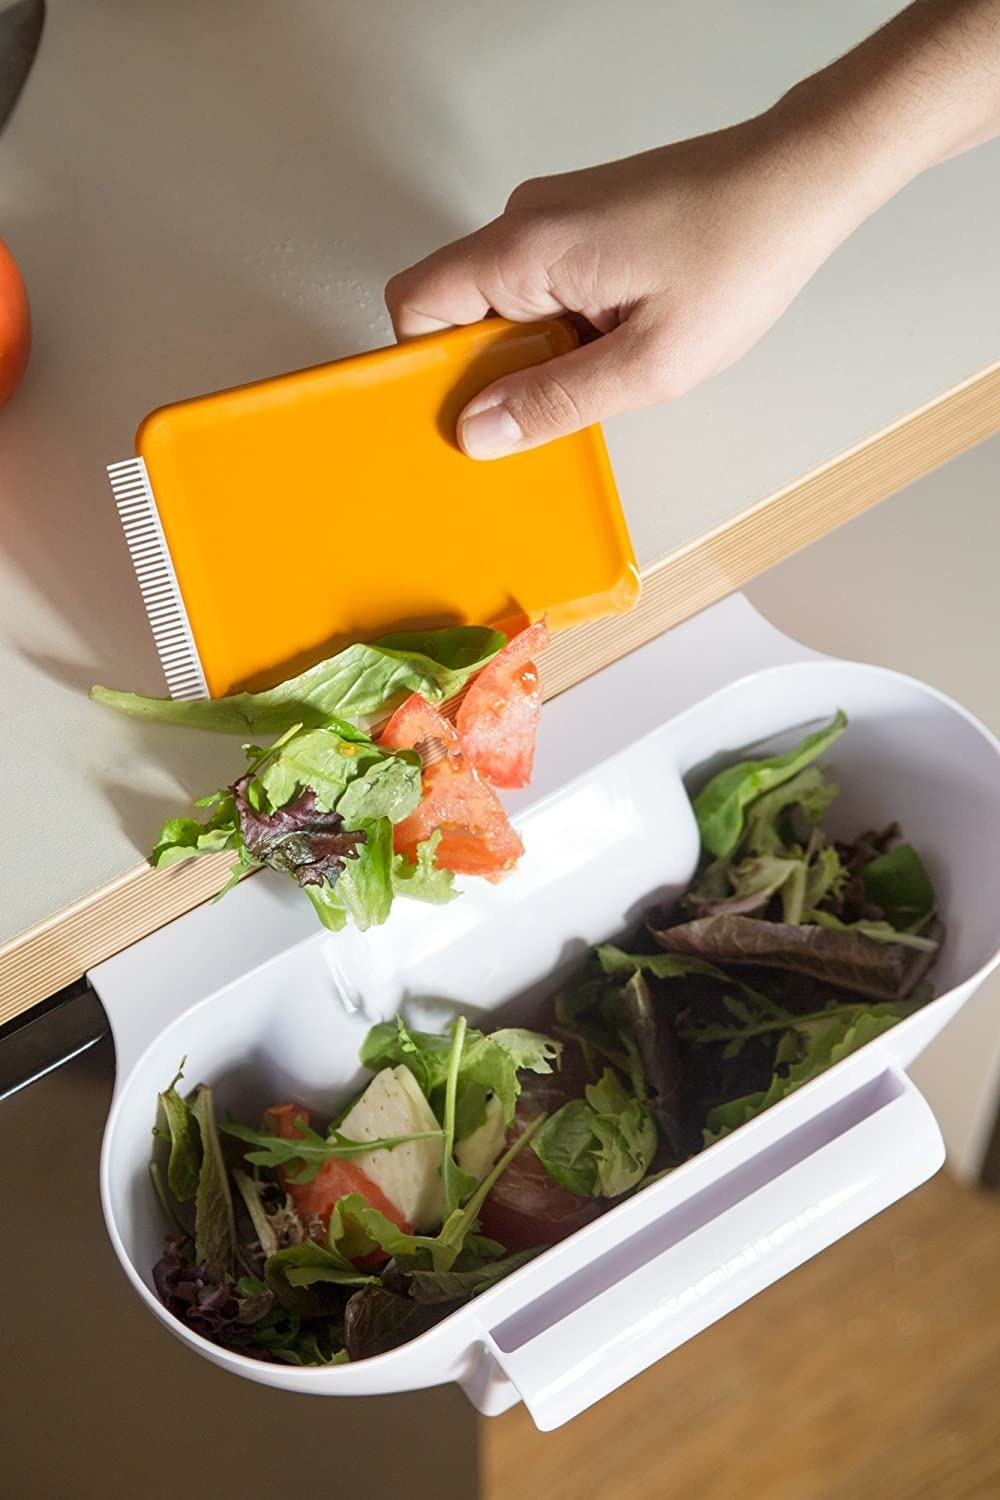 A person scraping kitchen scraps into the over-the-cabinet trap